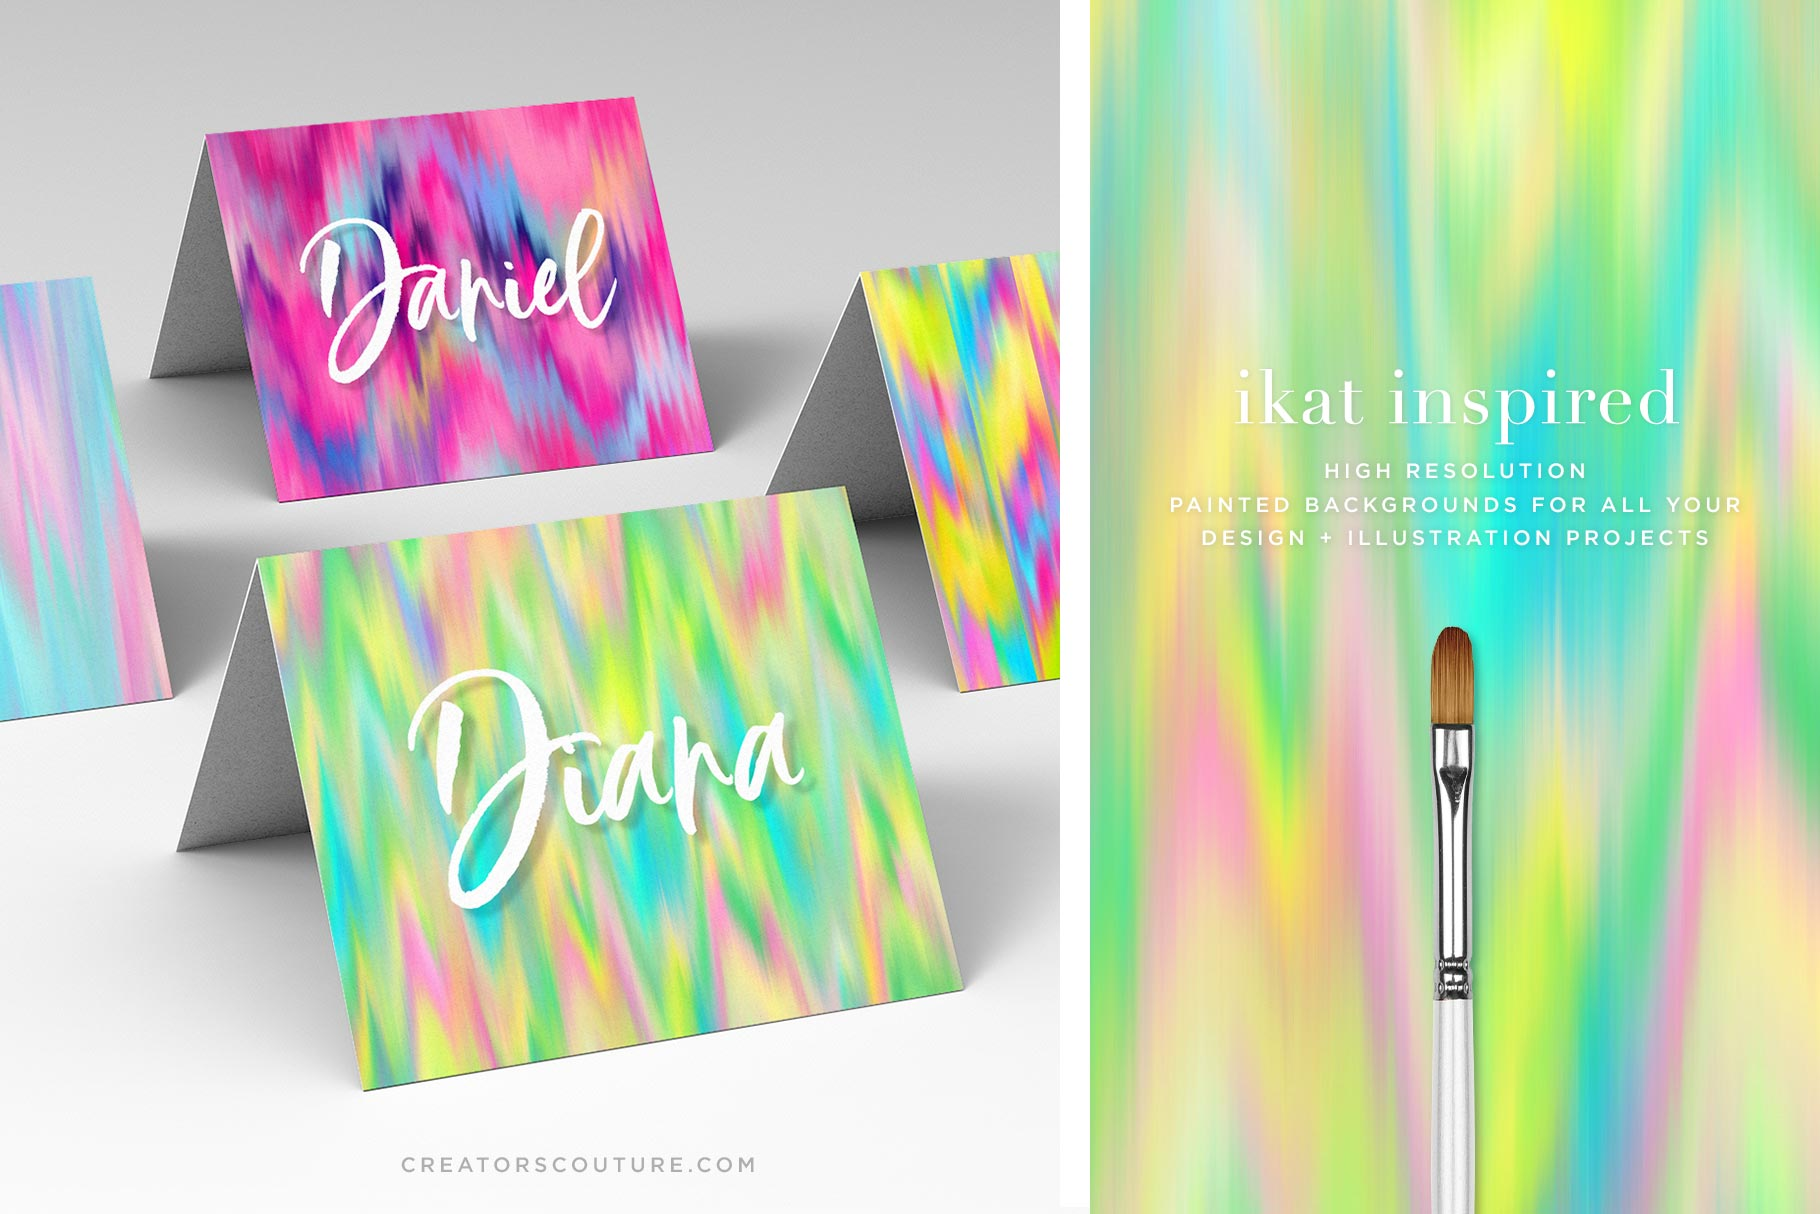 Ikat Inspired 'Palm Beach' Wet Paint Digital Backgrounds, sample of card design and close up of graphic texture